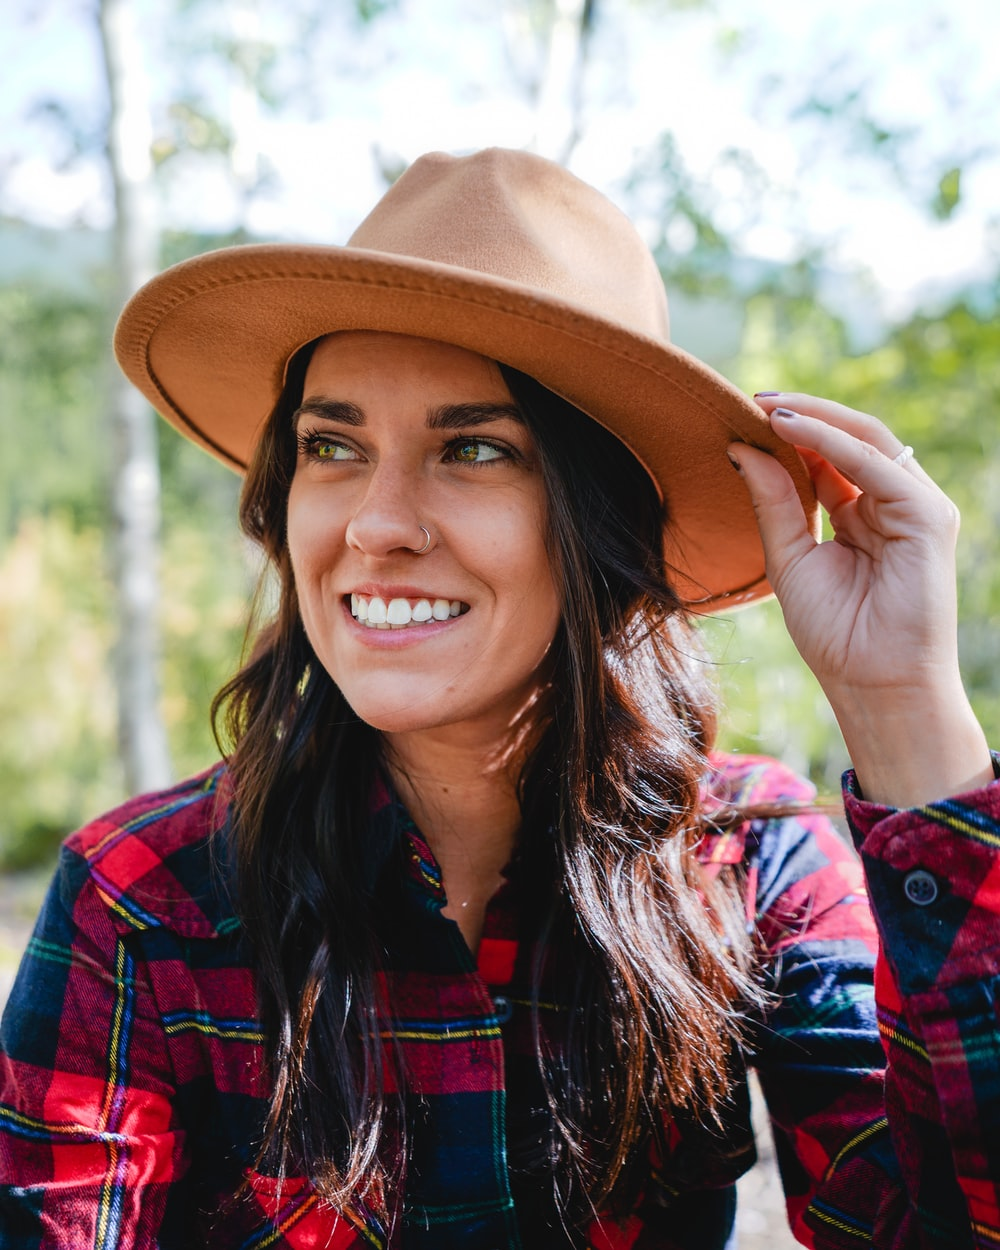 smiling woman in red and blue plaid dress shirt wearing brown hat